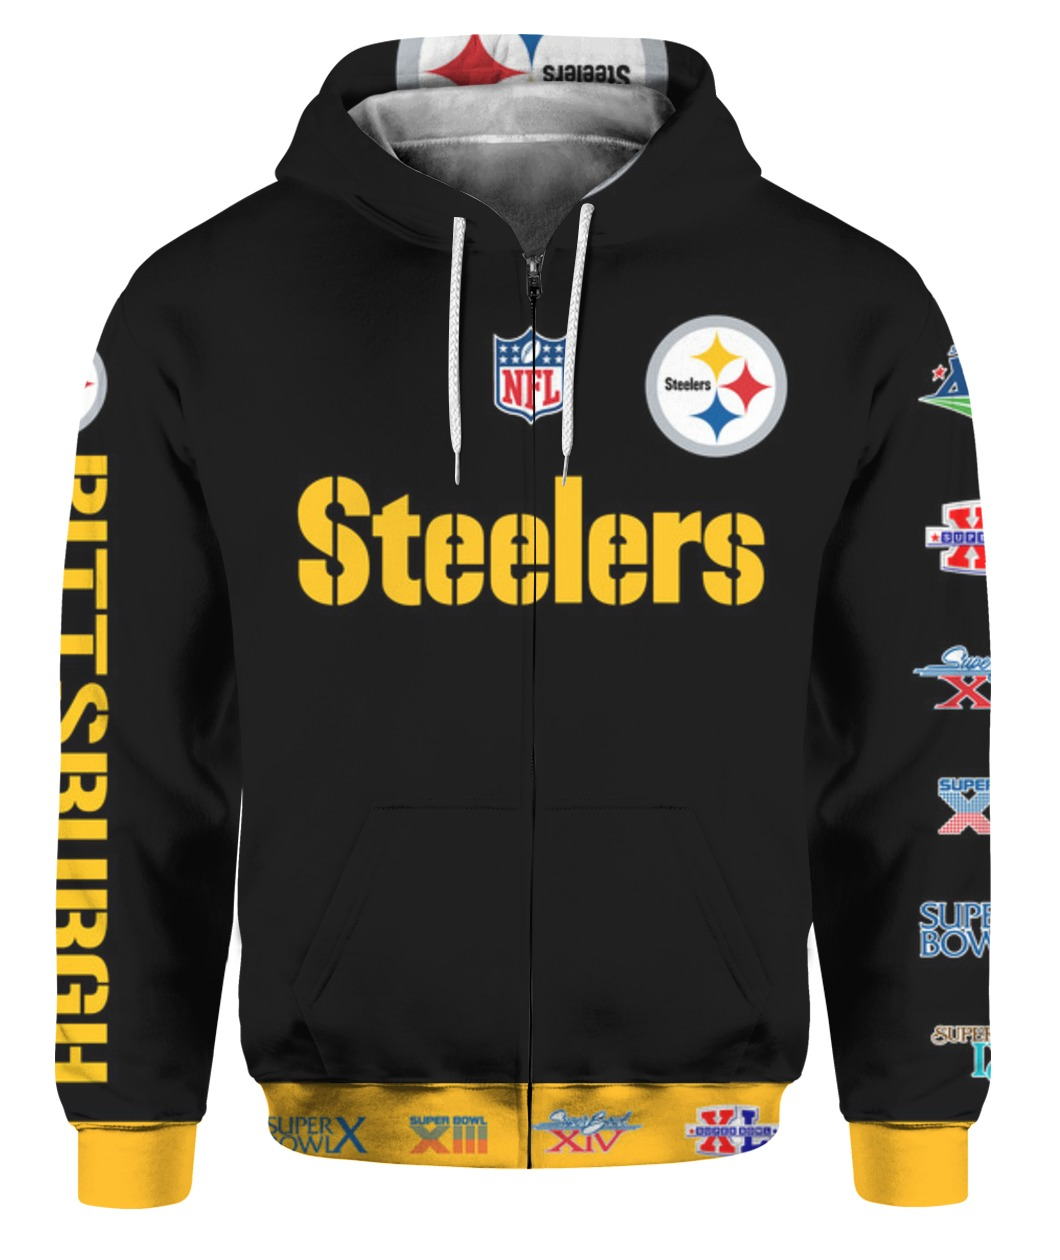 Stand for the flag kneel for the cross pittsburgh steelers all over print zip hoodie